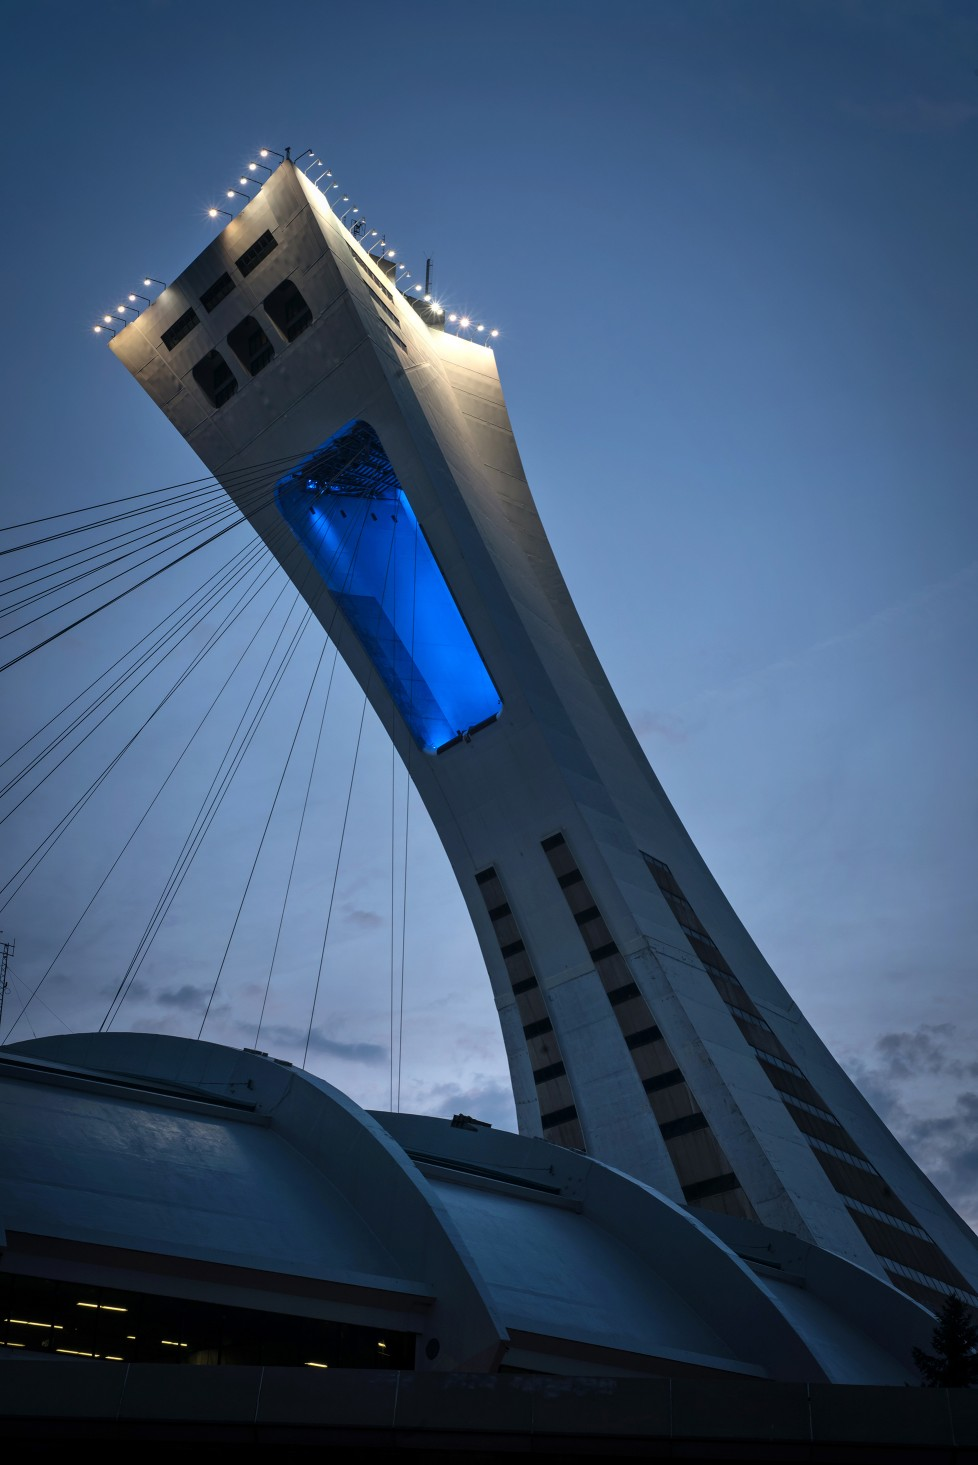 Lumenbeam Large Color Changing luminaires with 6° and 20° beam angles were used to modernize the tower's open arch lighting.